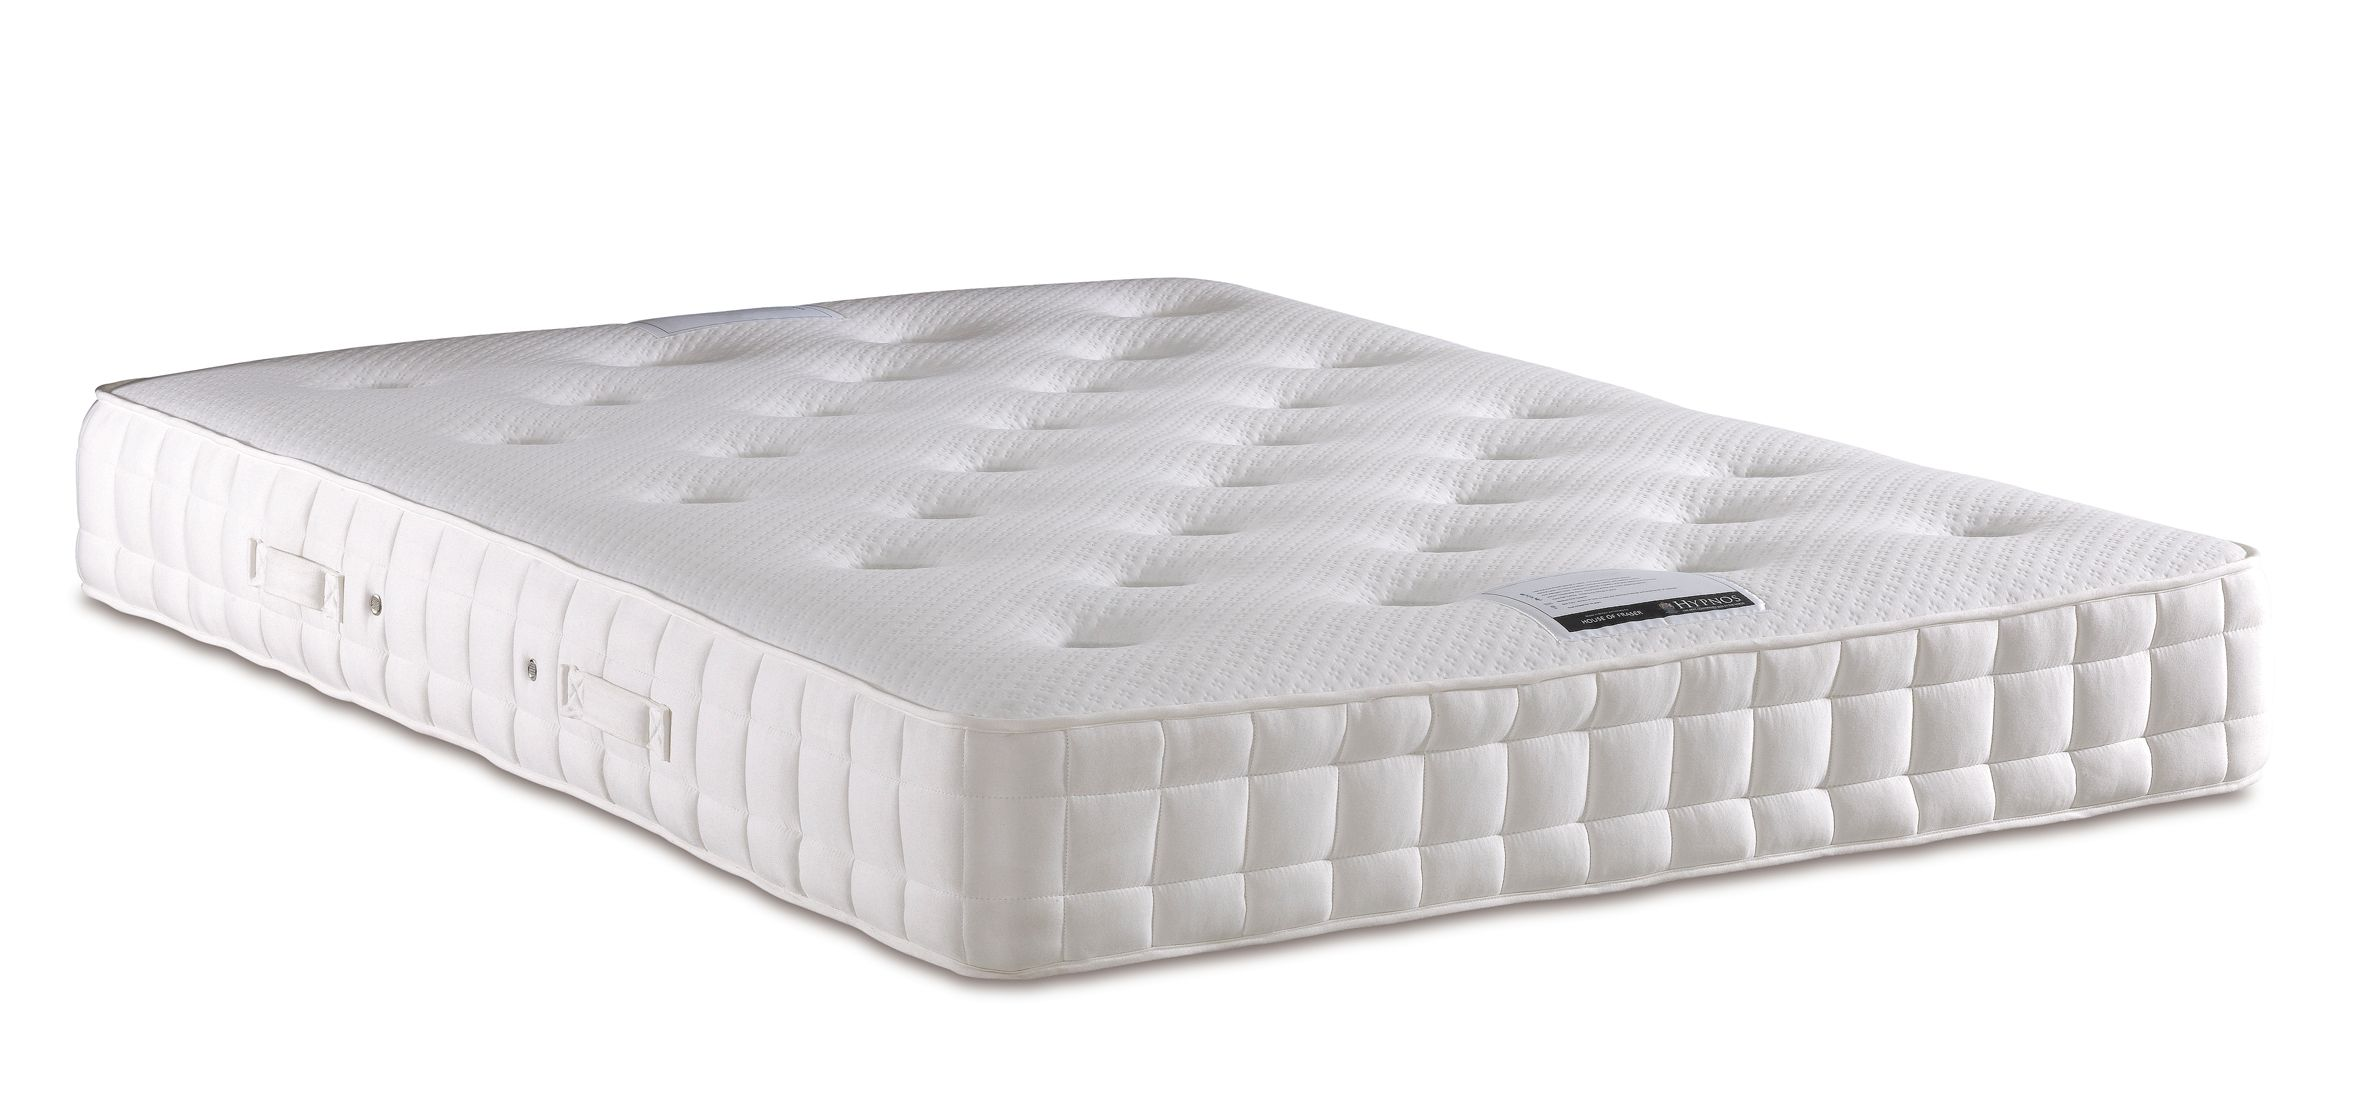 Contessa Mattress Range